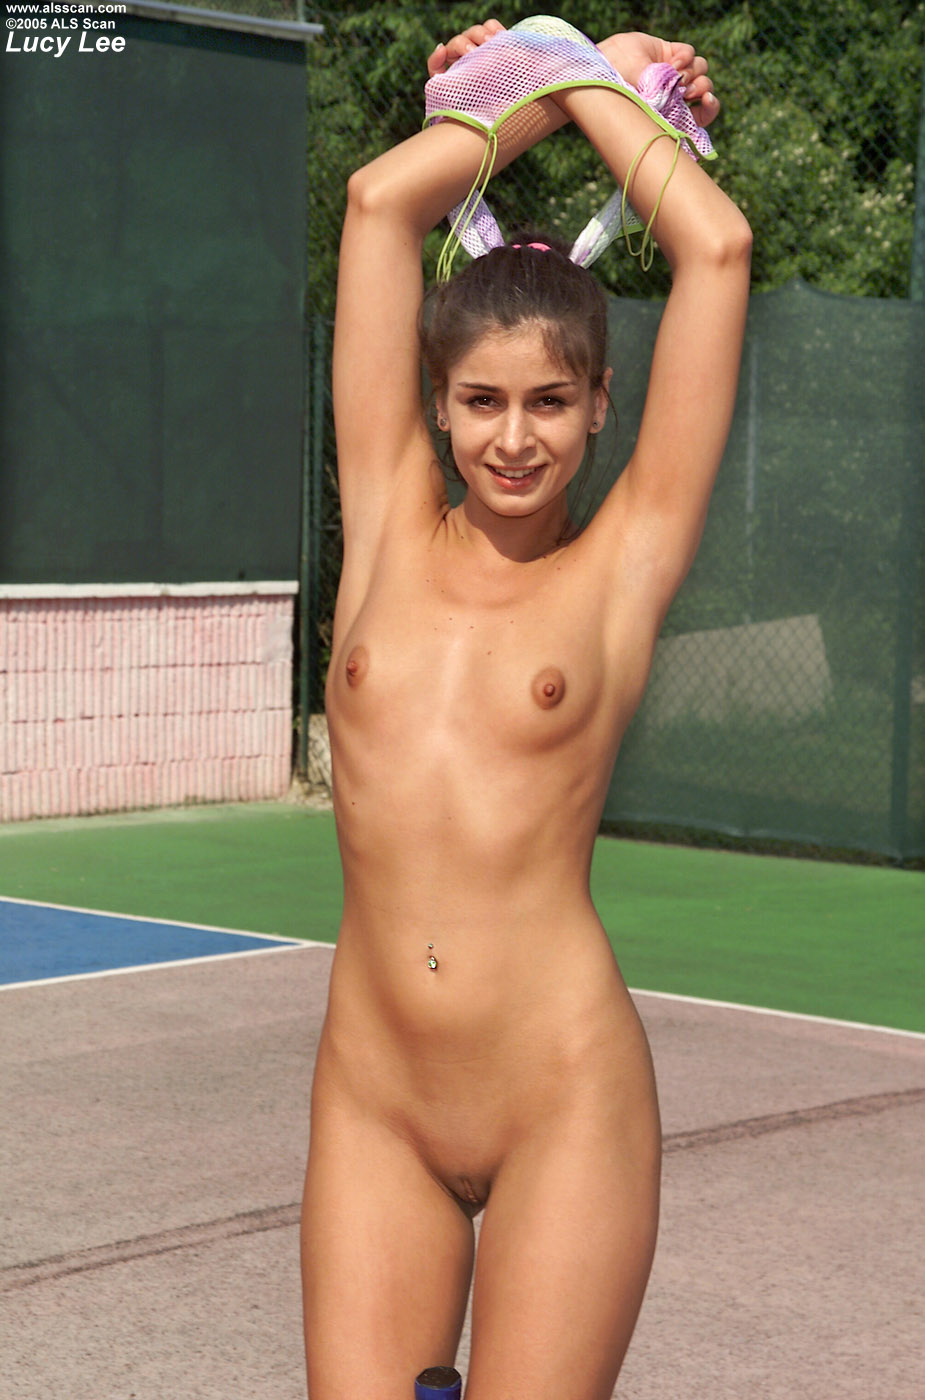 female sport star nude